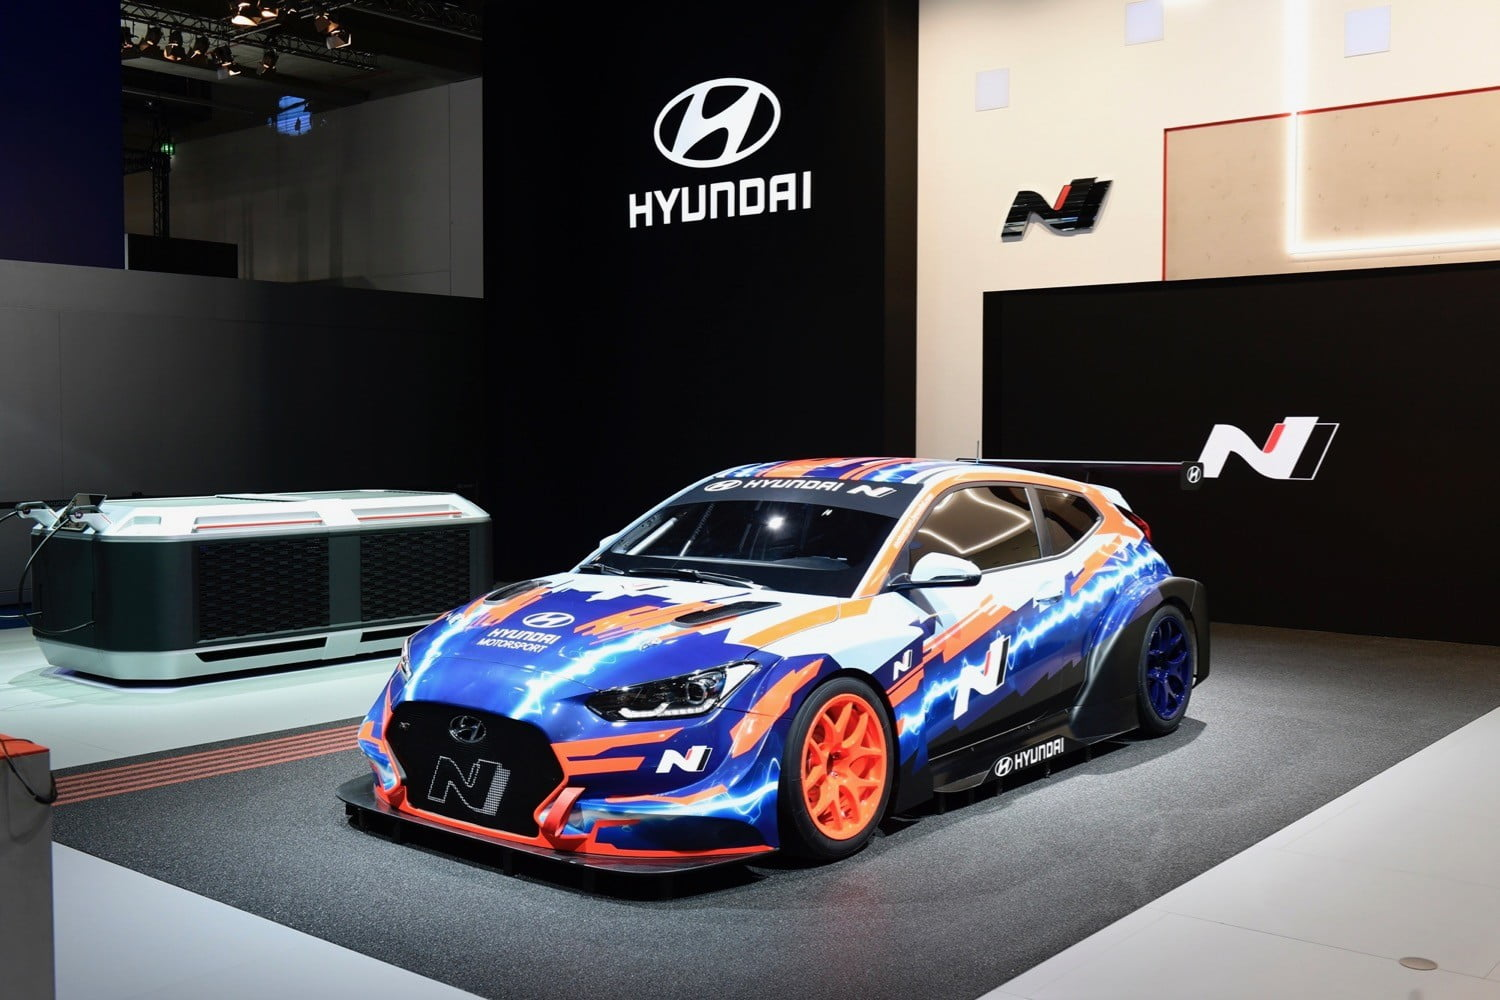 Hyundai to Unveil Electric Race Car at 2019 Frankfurt Motor